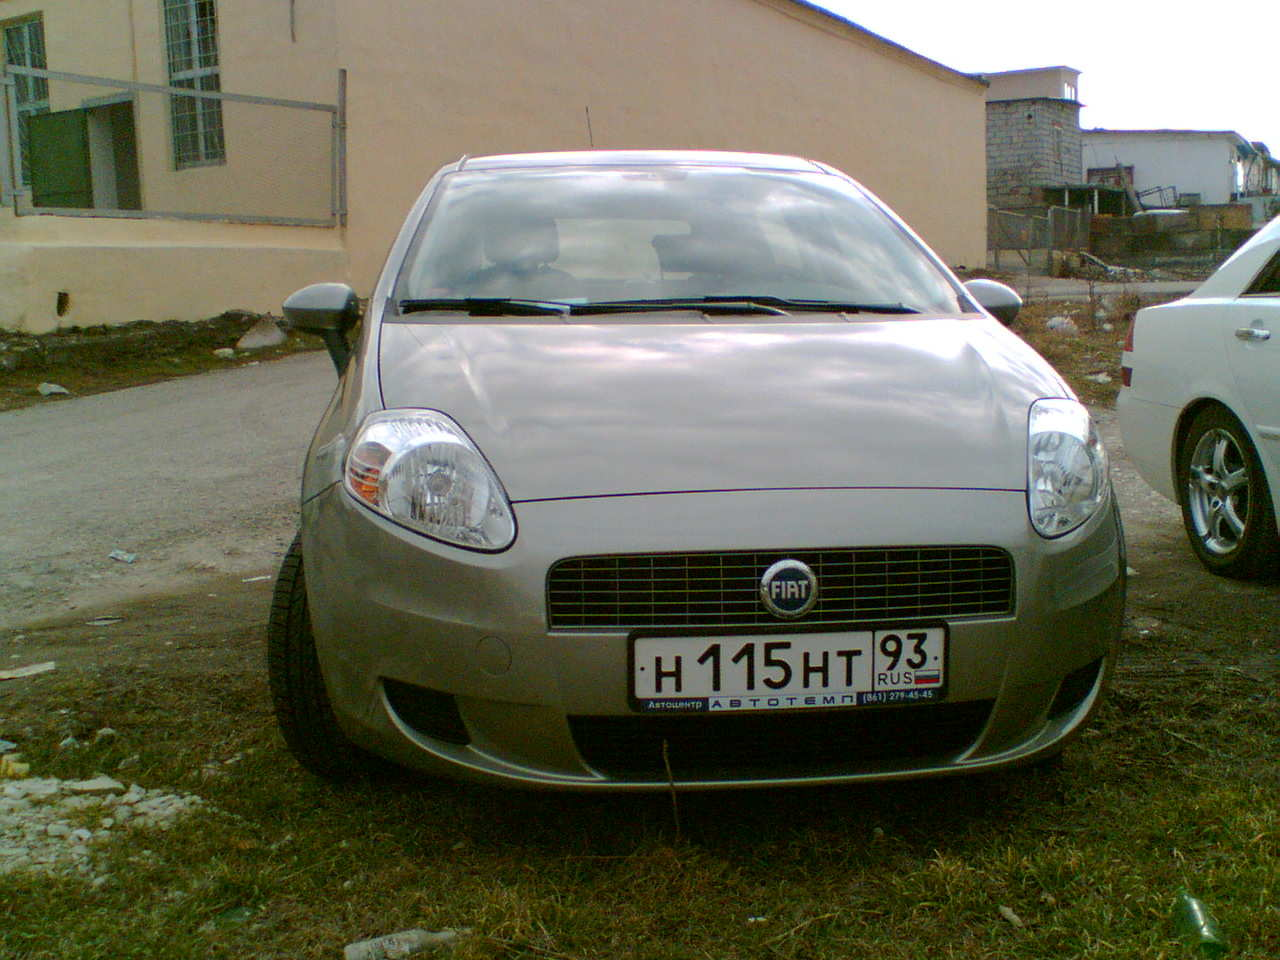 2007 fiat grande punto pictures 1400cc ff cvt for sale. Black Bedroom Furniture Sets. Home Design Ideas